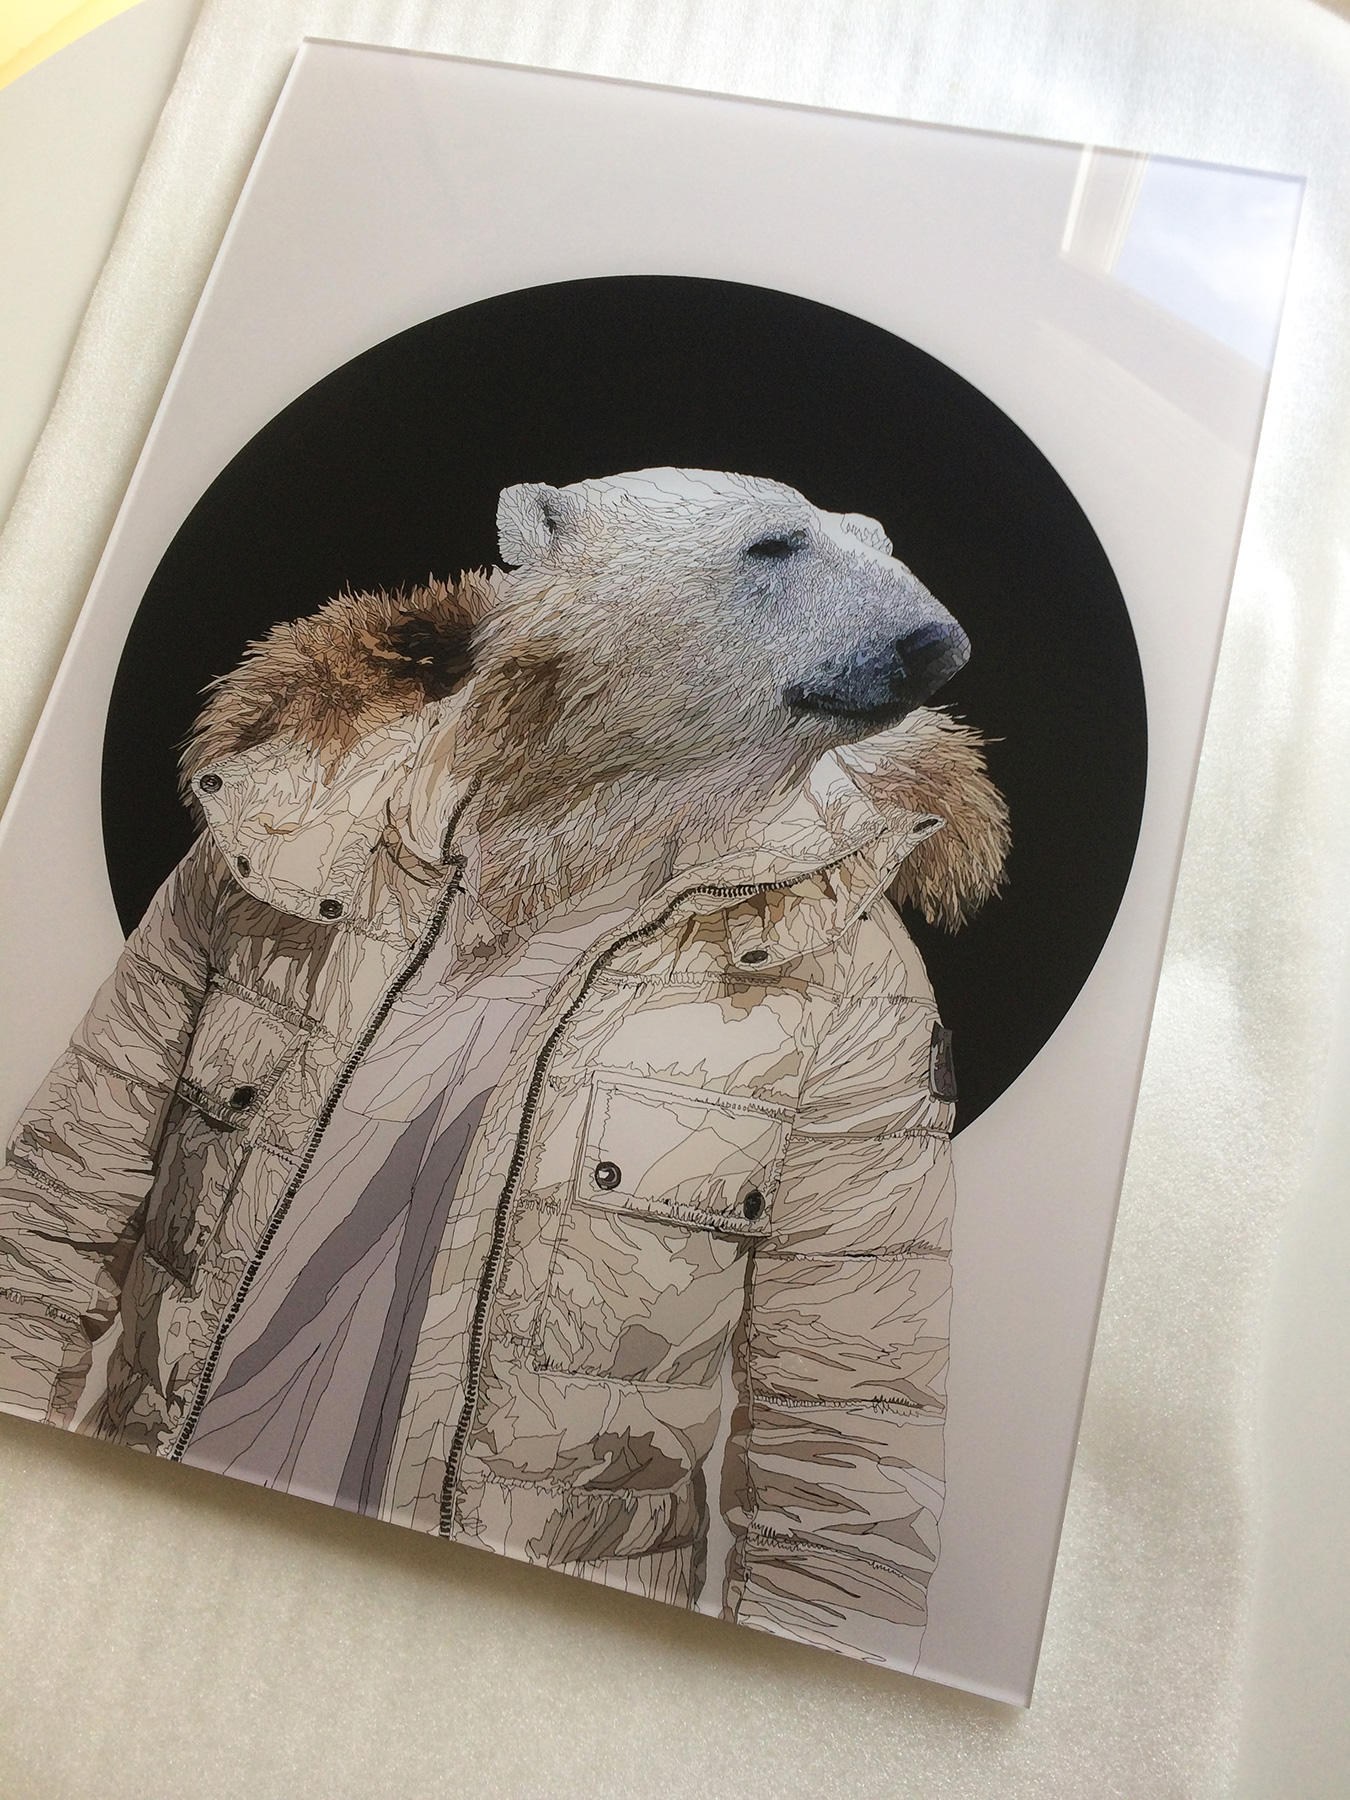 Stay Cool - Limited edition print on acylic mount